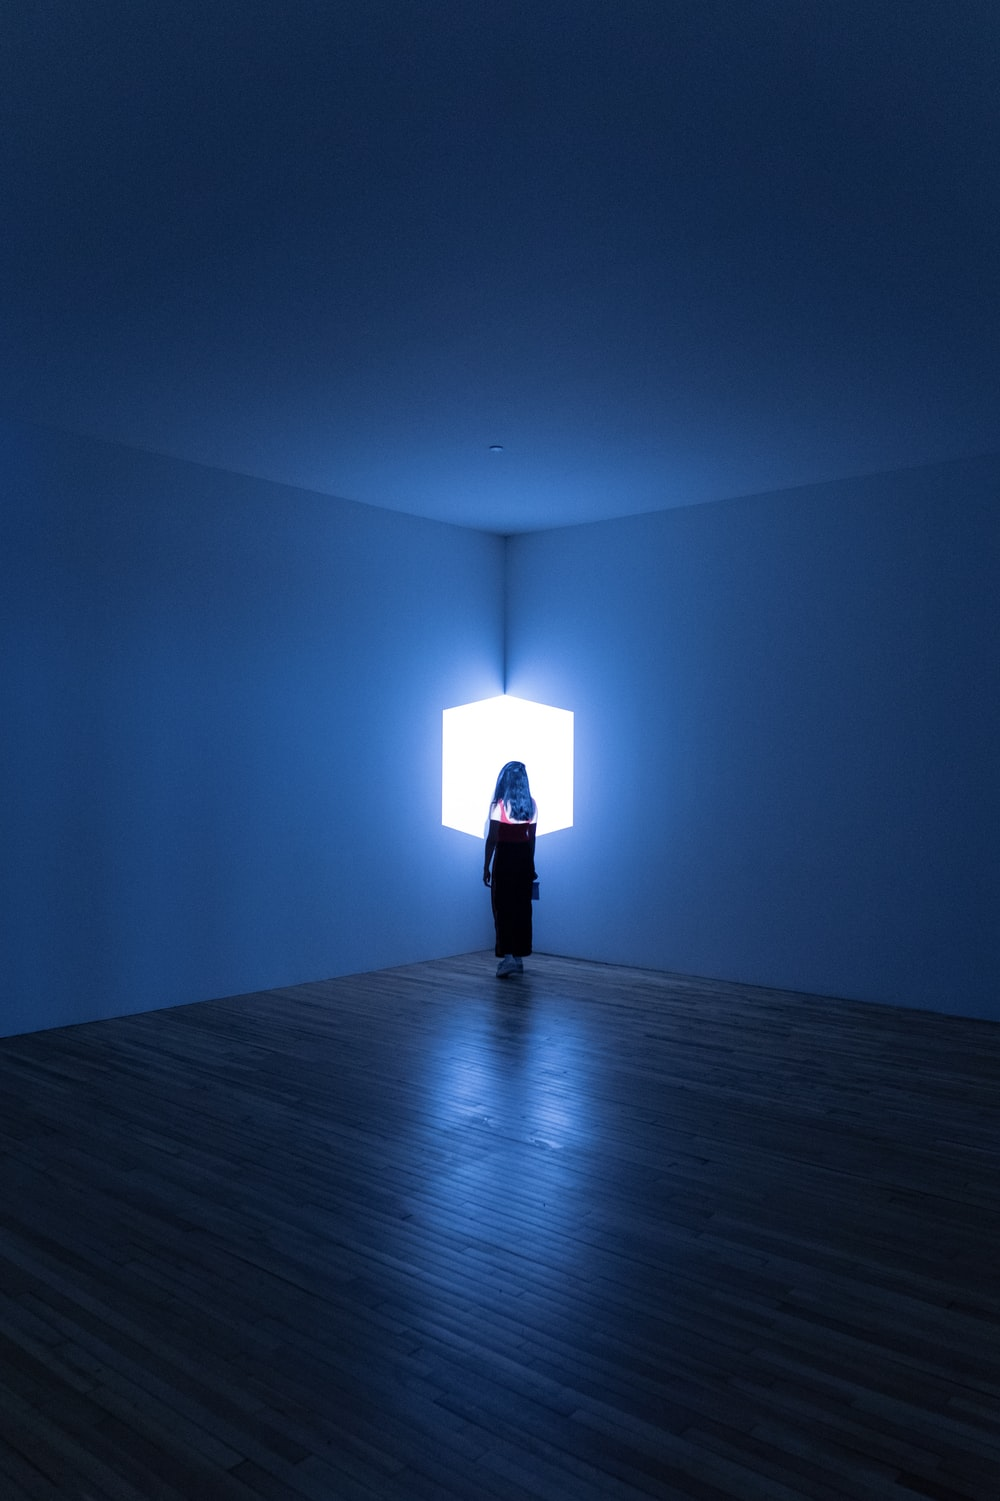 woman standing in the corner of the room